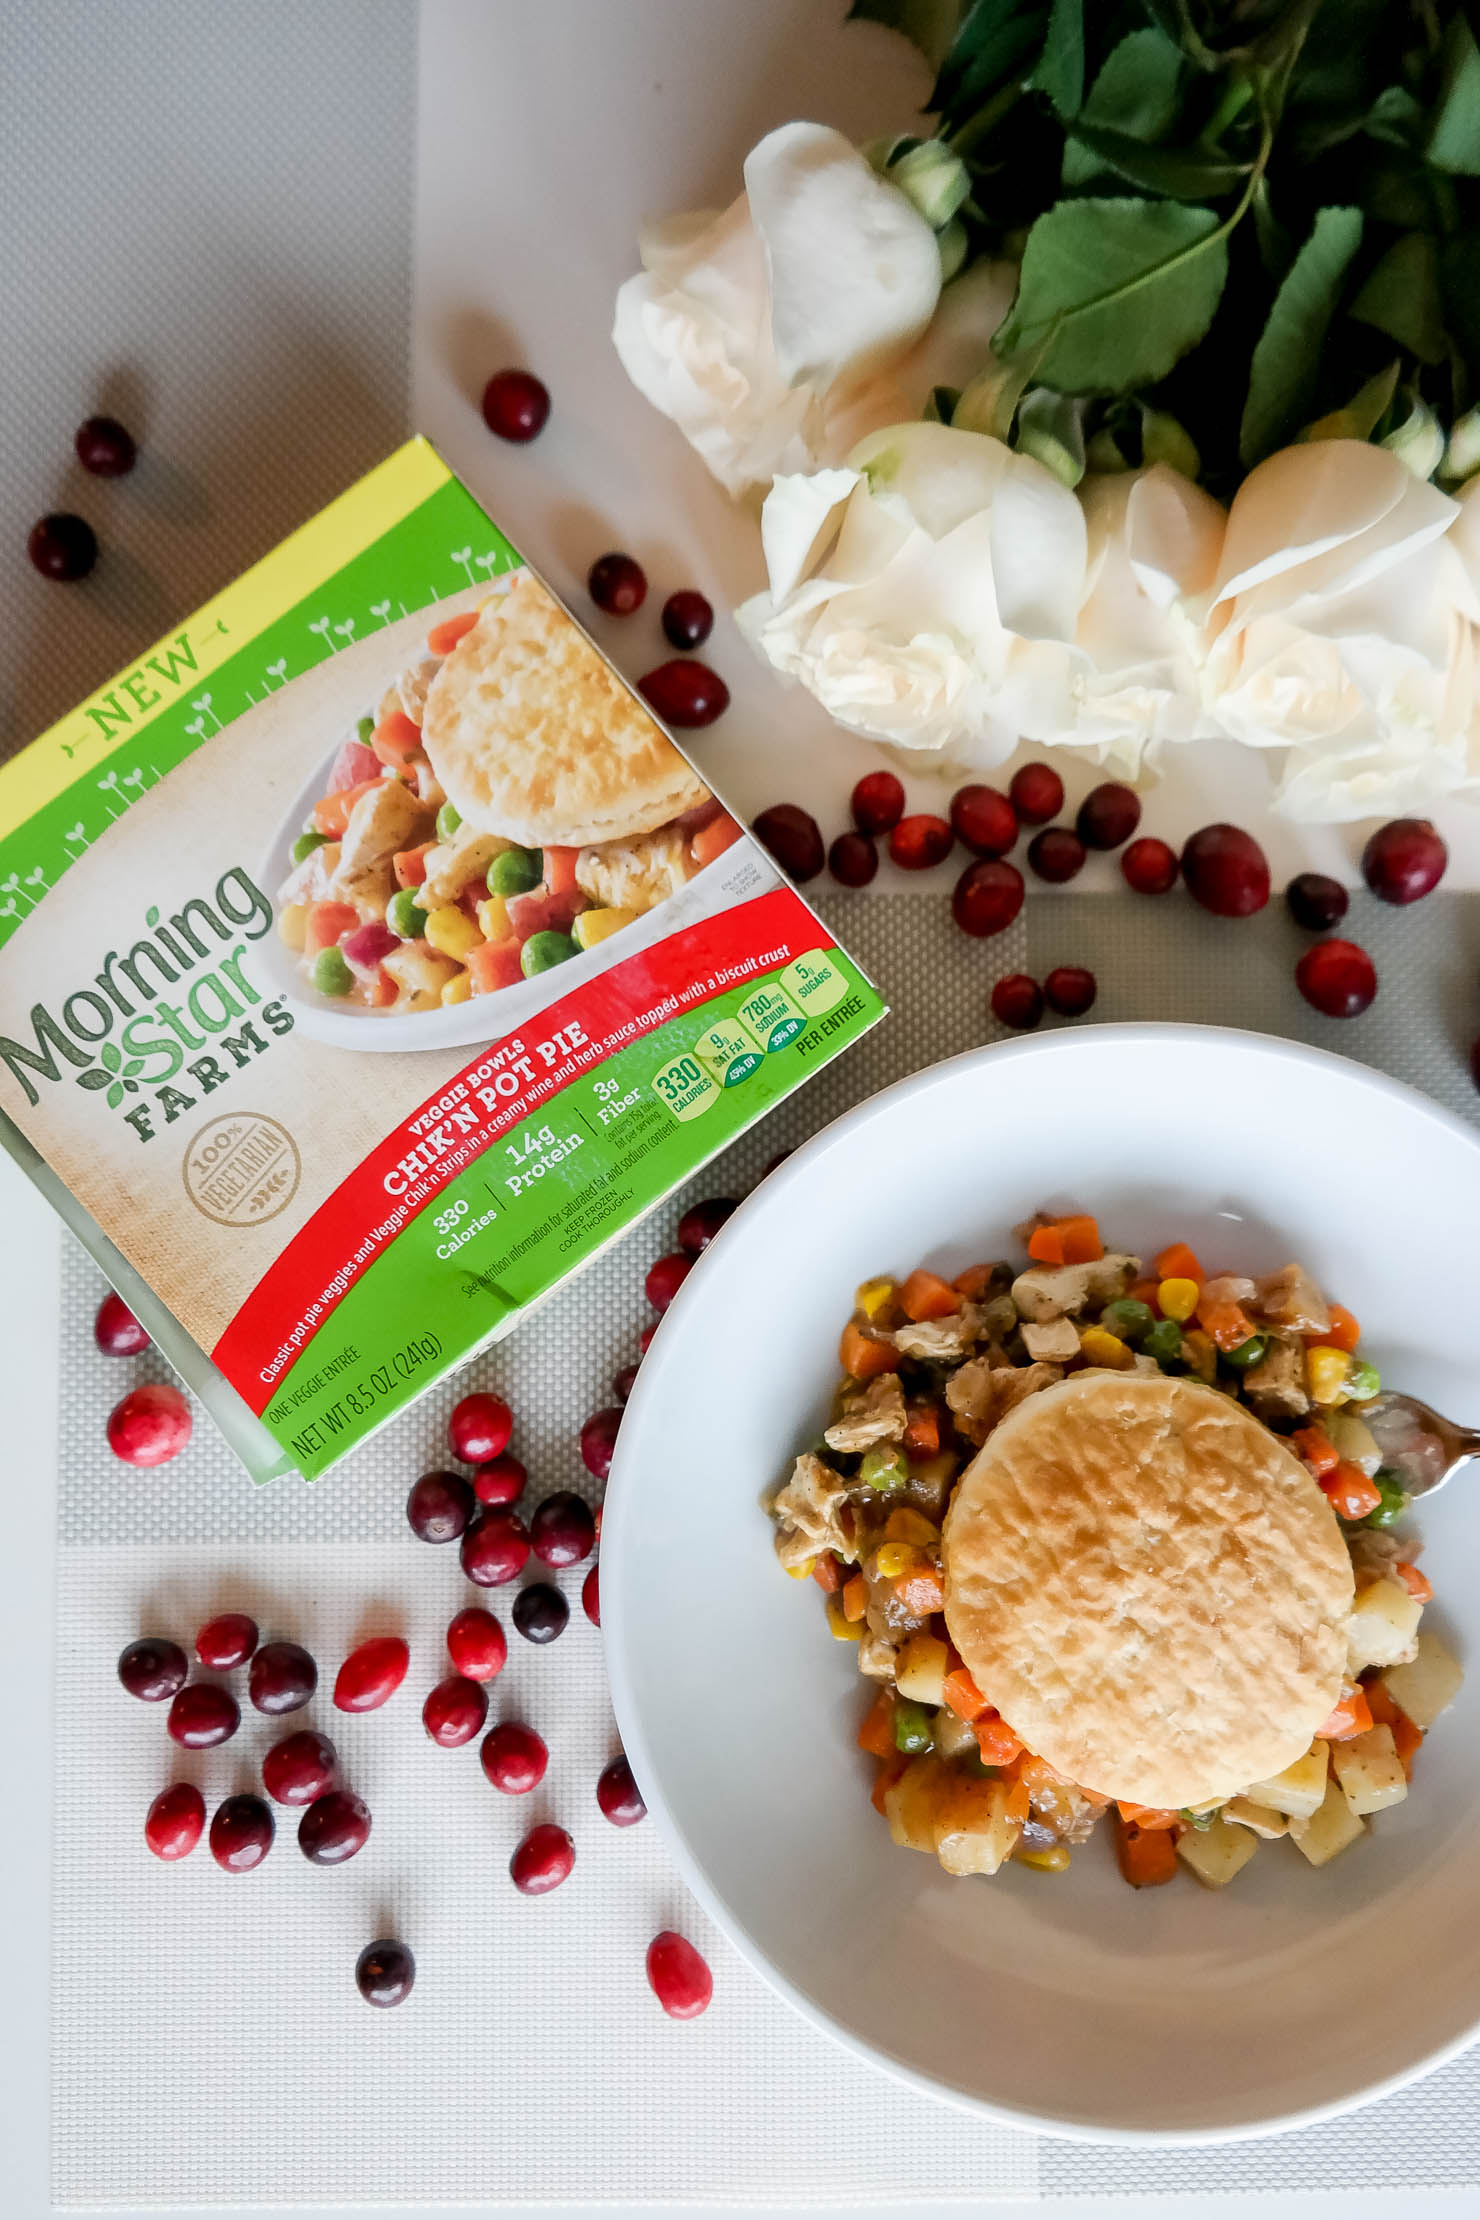 Making Healthier Choices Morningstar Farms Veggie Bowls Chicken Pot Pie Healthy Lifestyle Veggie Cuisine